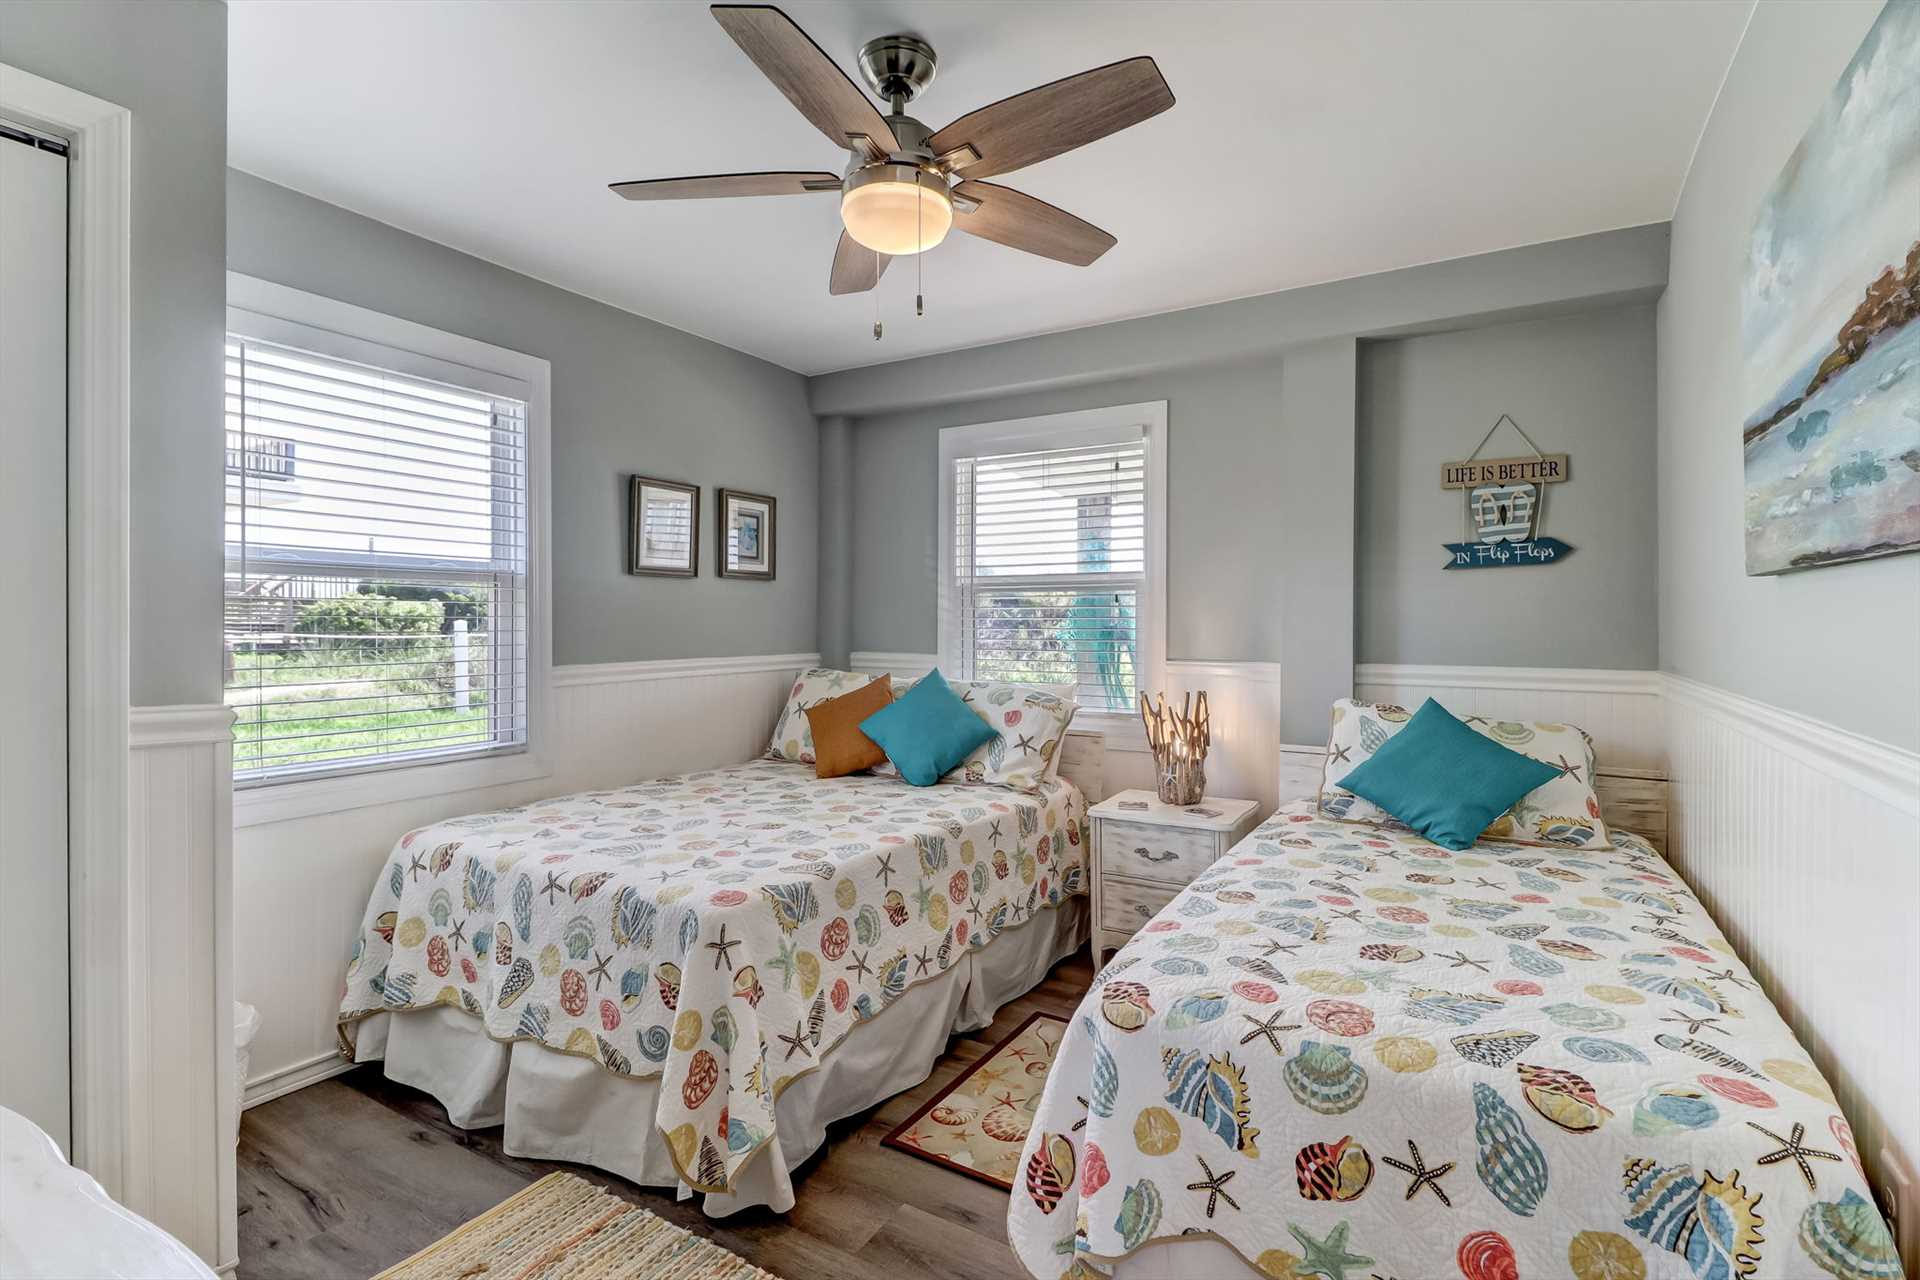 Ground floor bedroom with 1 full and 1 twin bed